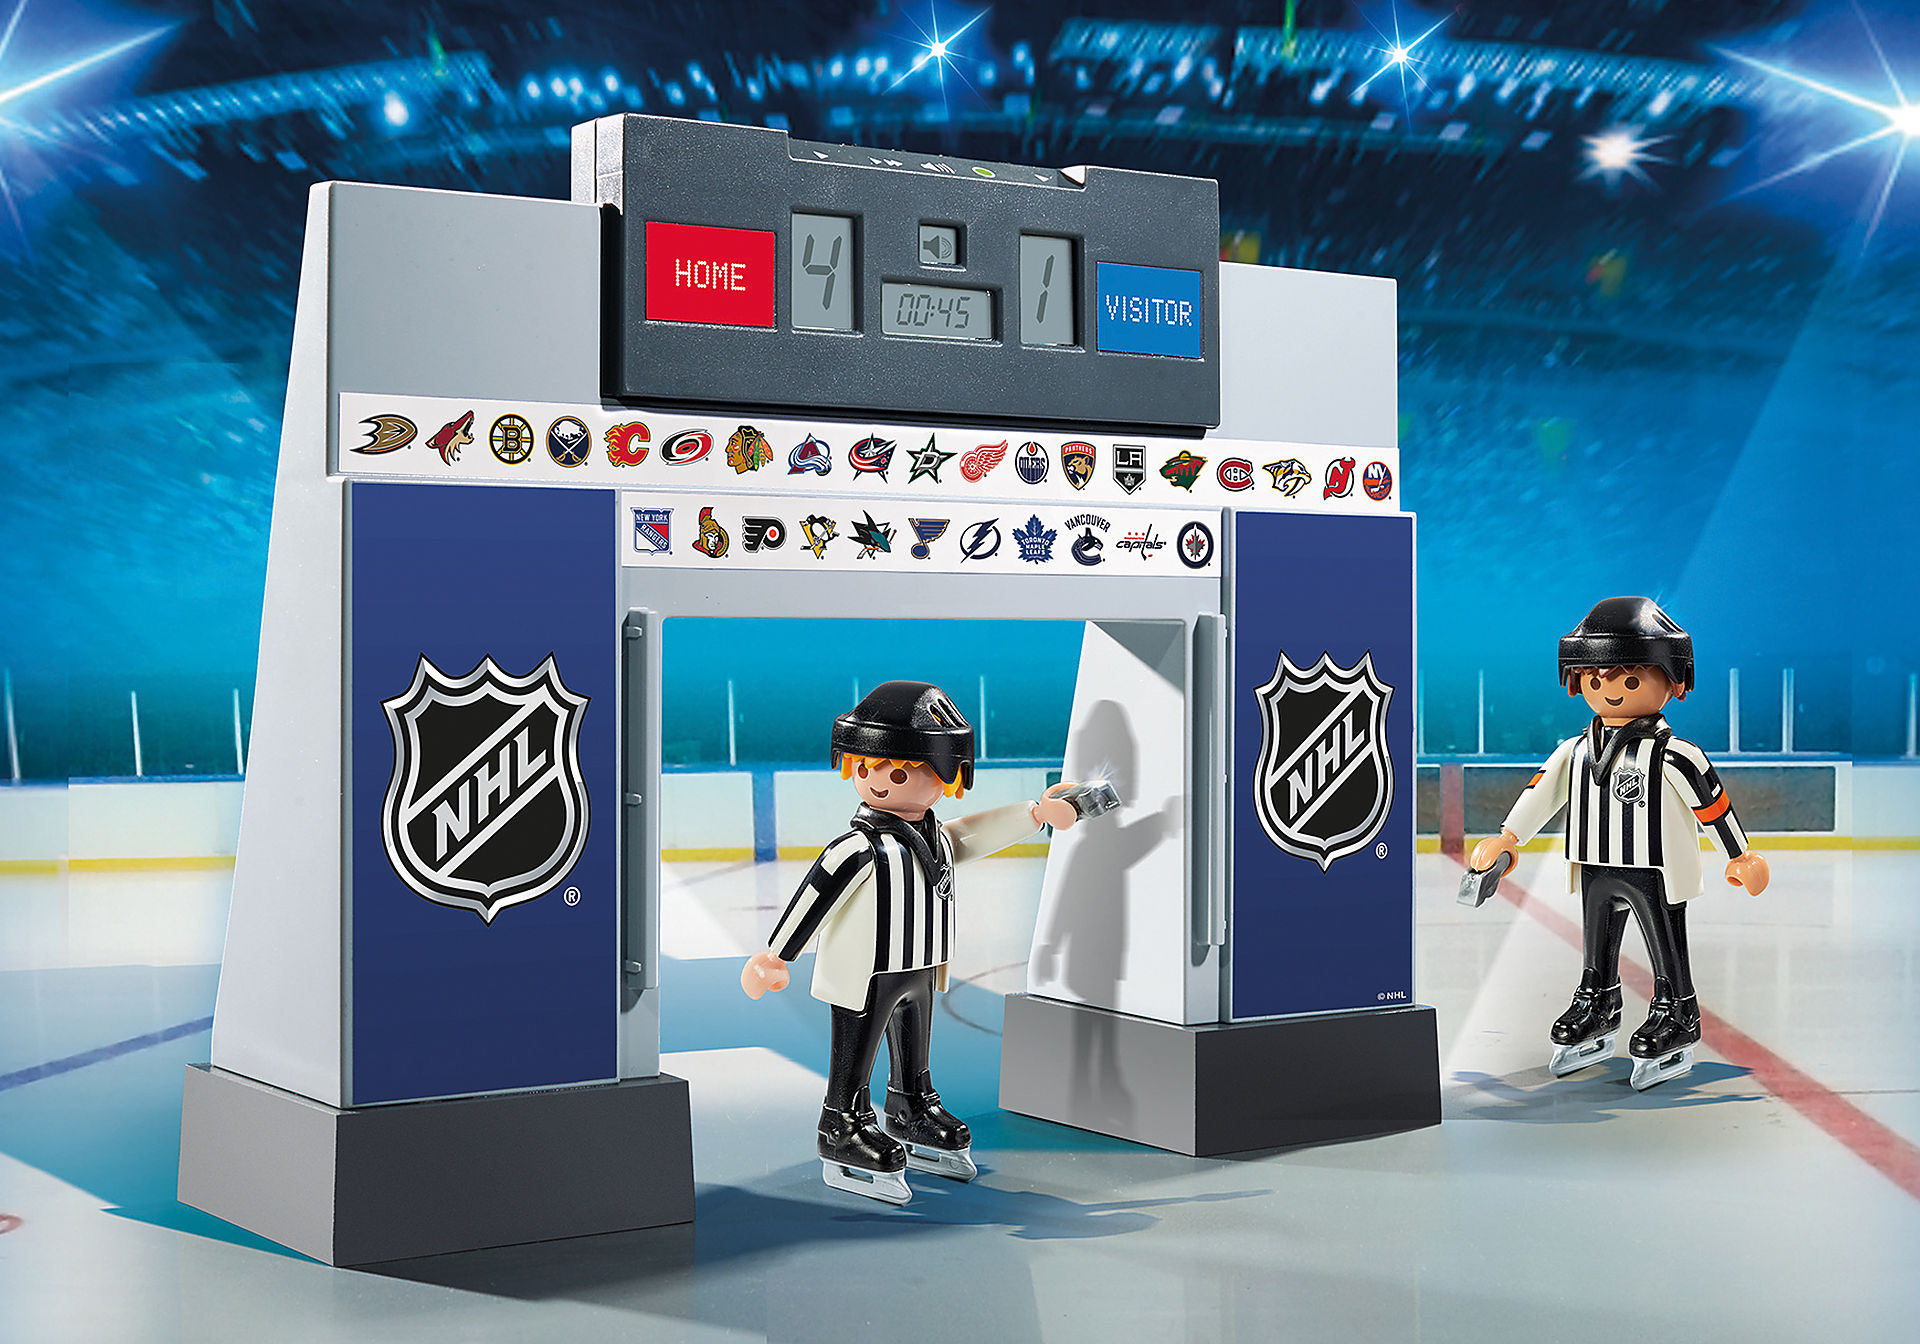 9016 NHL™ Score Clock  with 2 Referees zoom image1